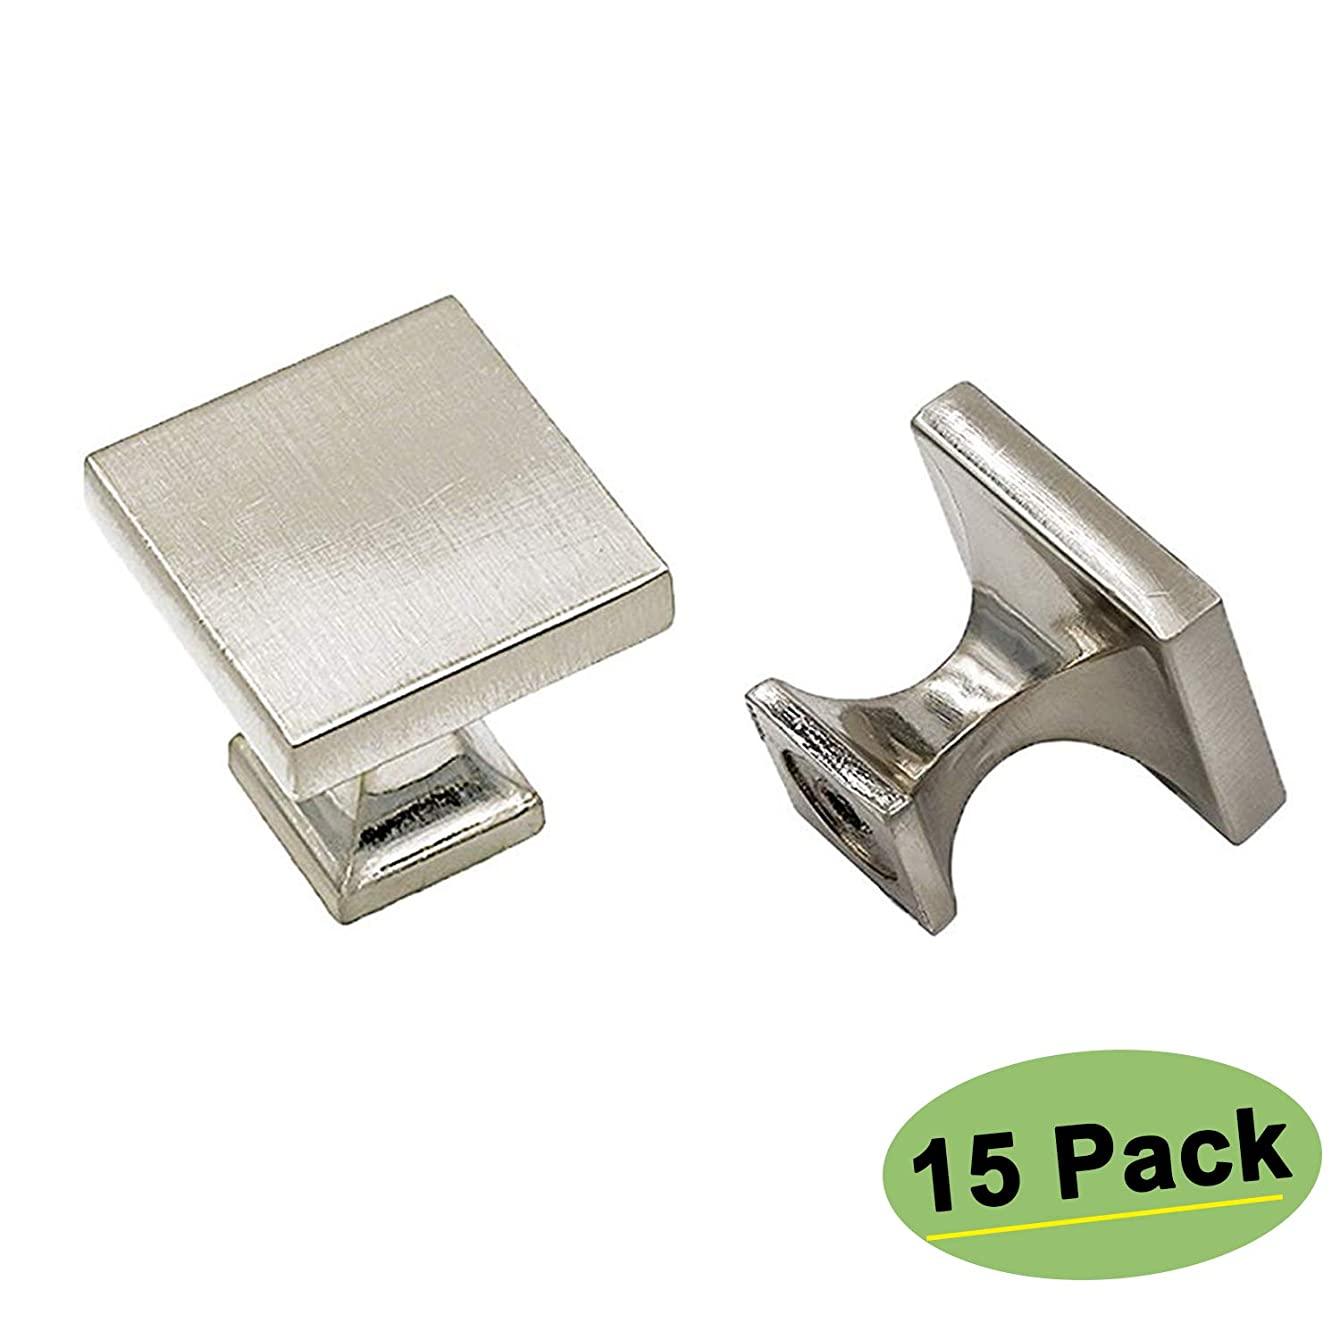 homdiy Cabinet Knobs Brushed Nickel 15 Pack - HD6785SNB SOILD WxW:1-1/10 inch Square Cabinet Knobs for Kitchen Cabinets Modern Drawer Knobs Silver Cabinet Hardware Knobs for Bathroom, Closet, Wardrobe